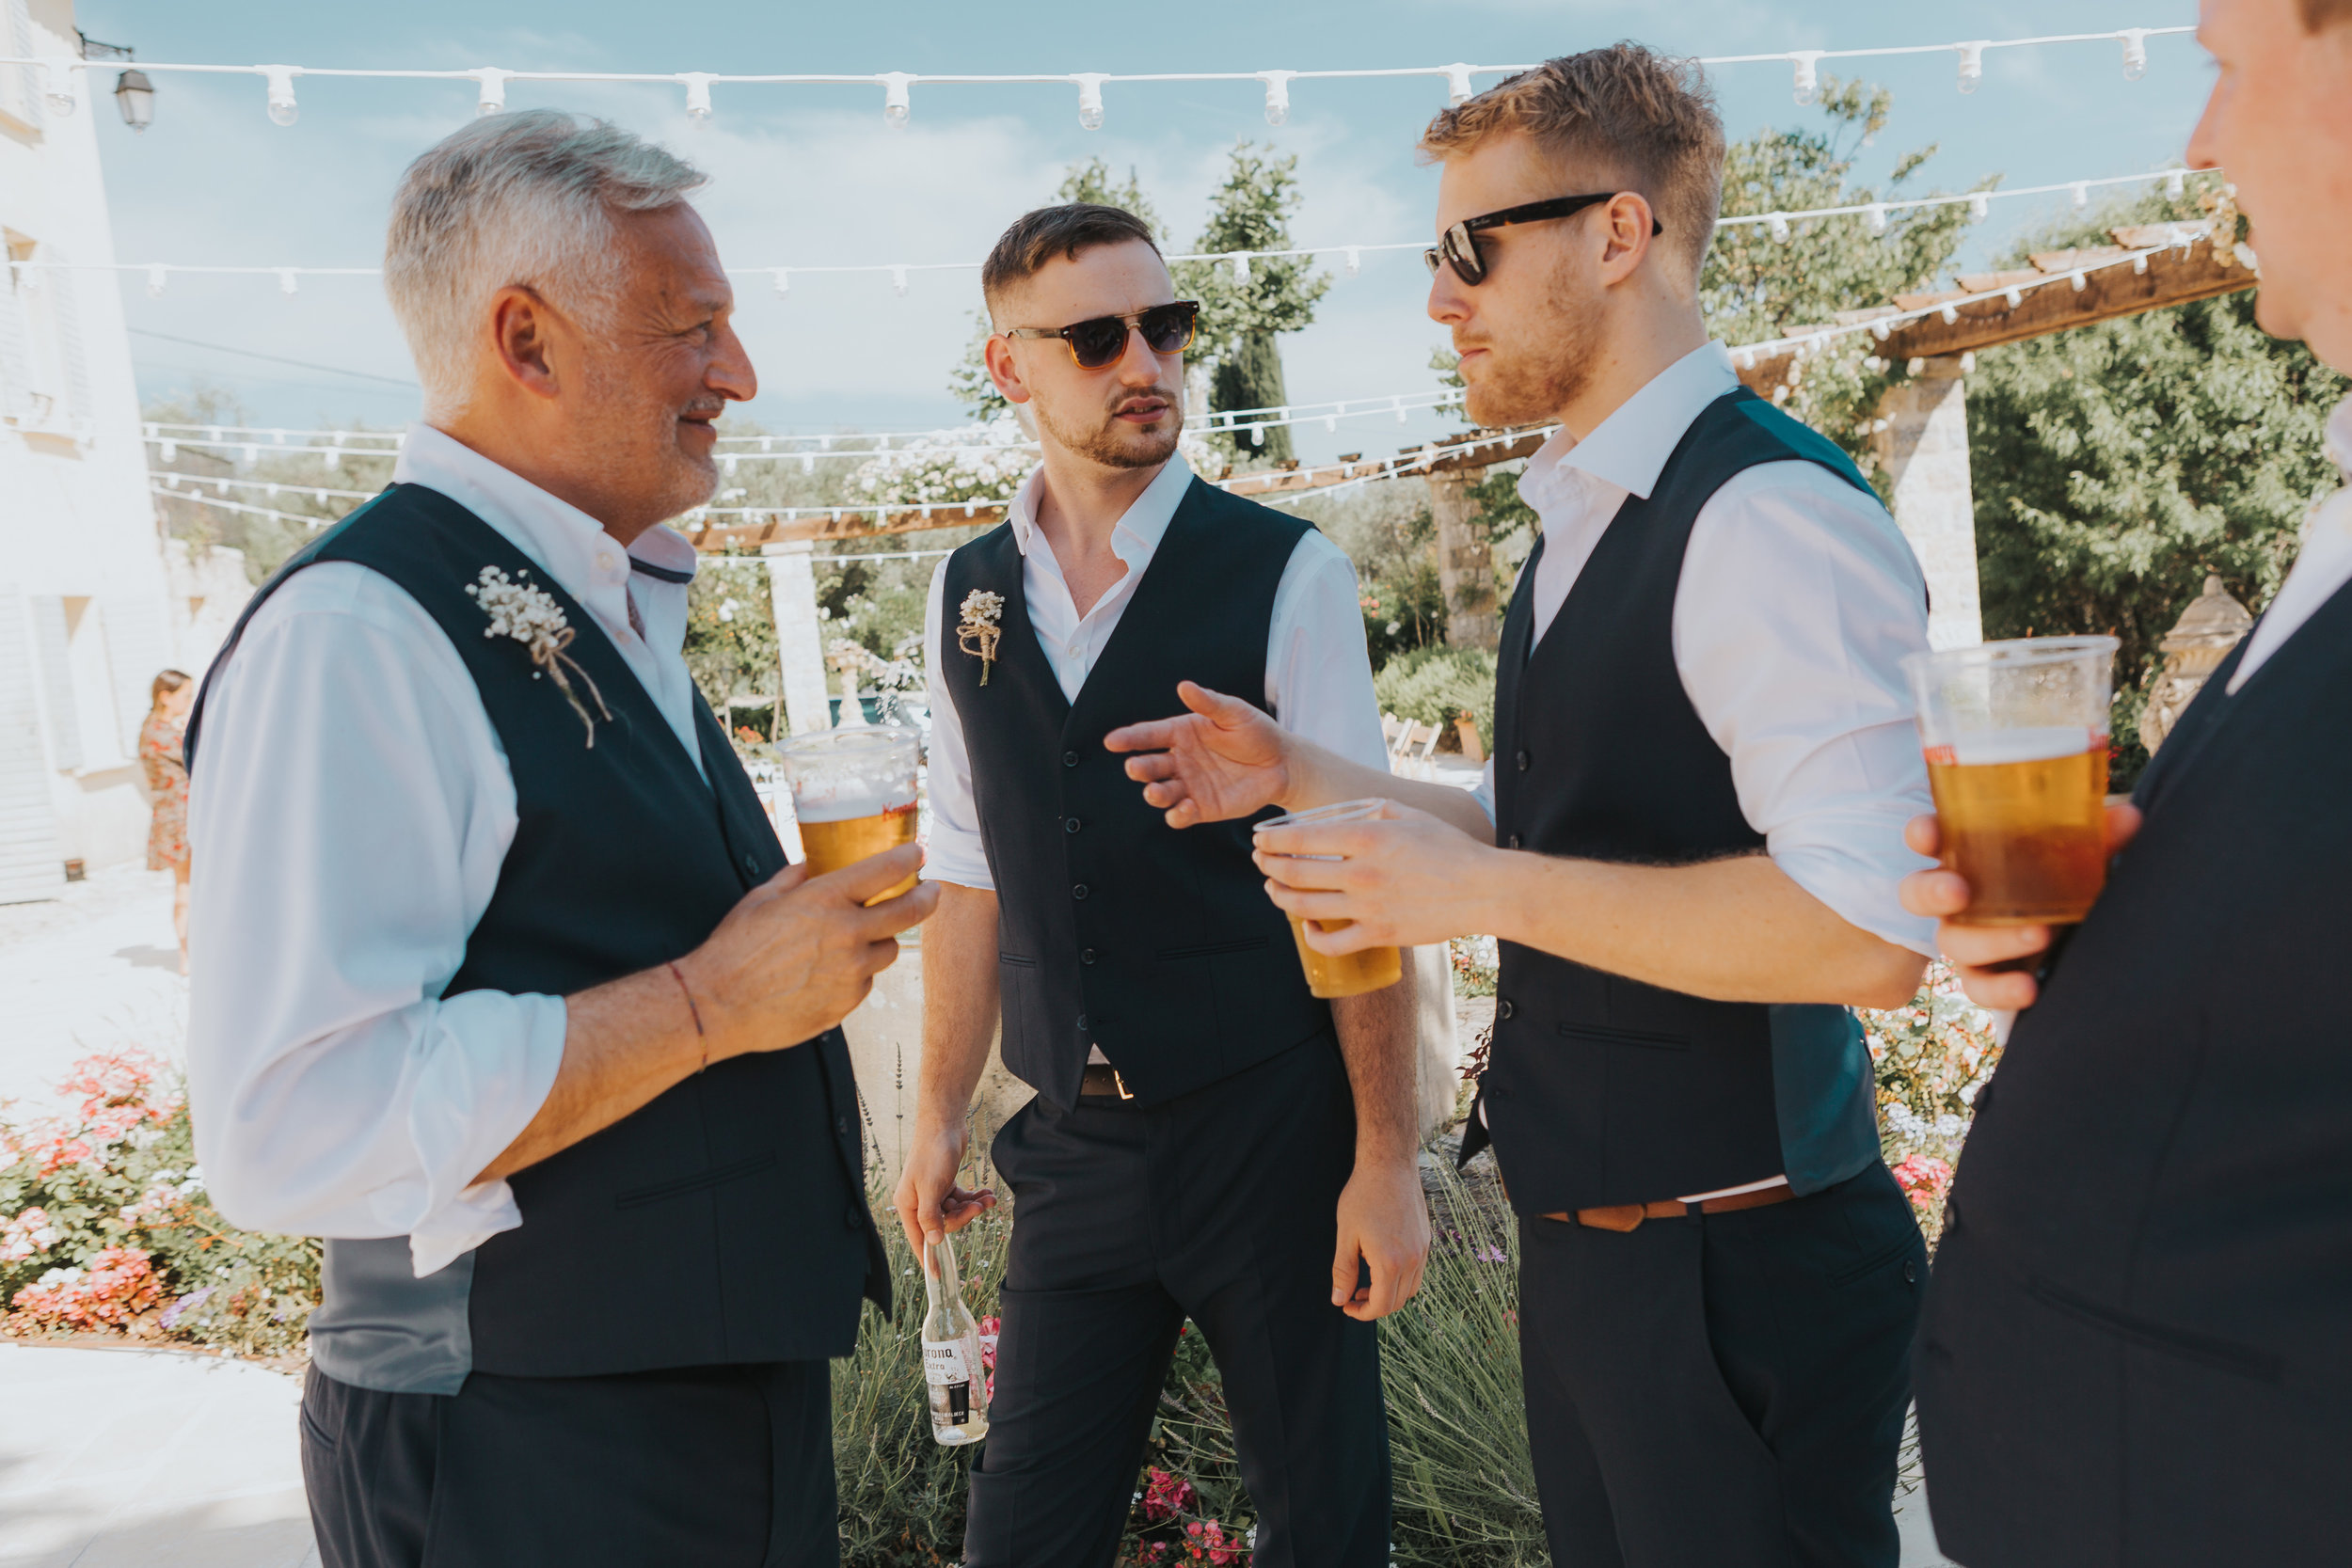 Groom Detail and Inspiration for the Alternative Wedding - Claire Basiuk Photography - 04.jpg